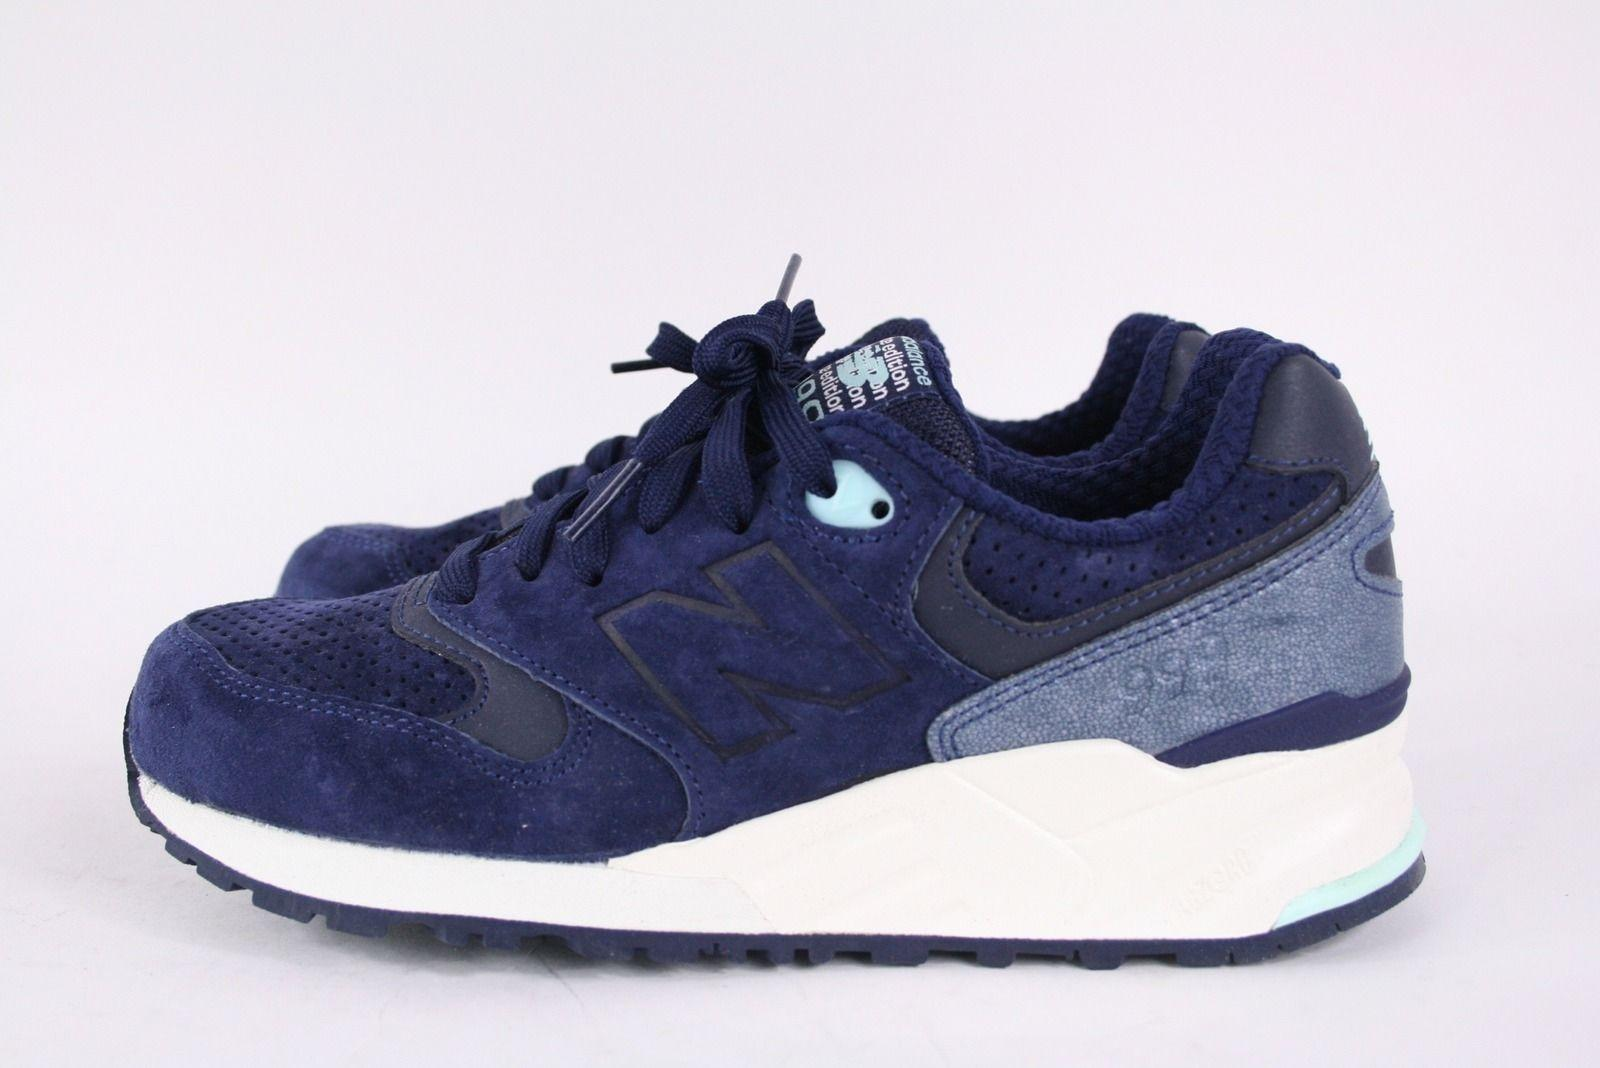 separation shoes 182ab 79174 ... sweden new balance 999 womens meteorite wl999gmt pigment navy blue  athletic. 1234567 963b6 eb5e6